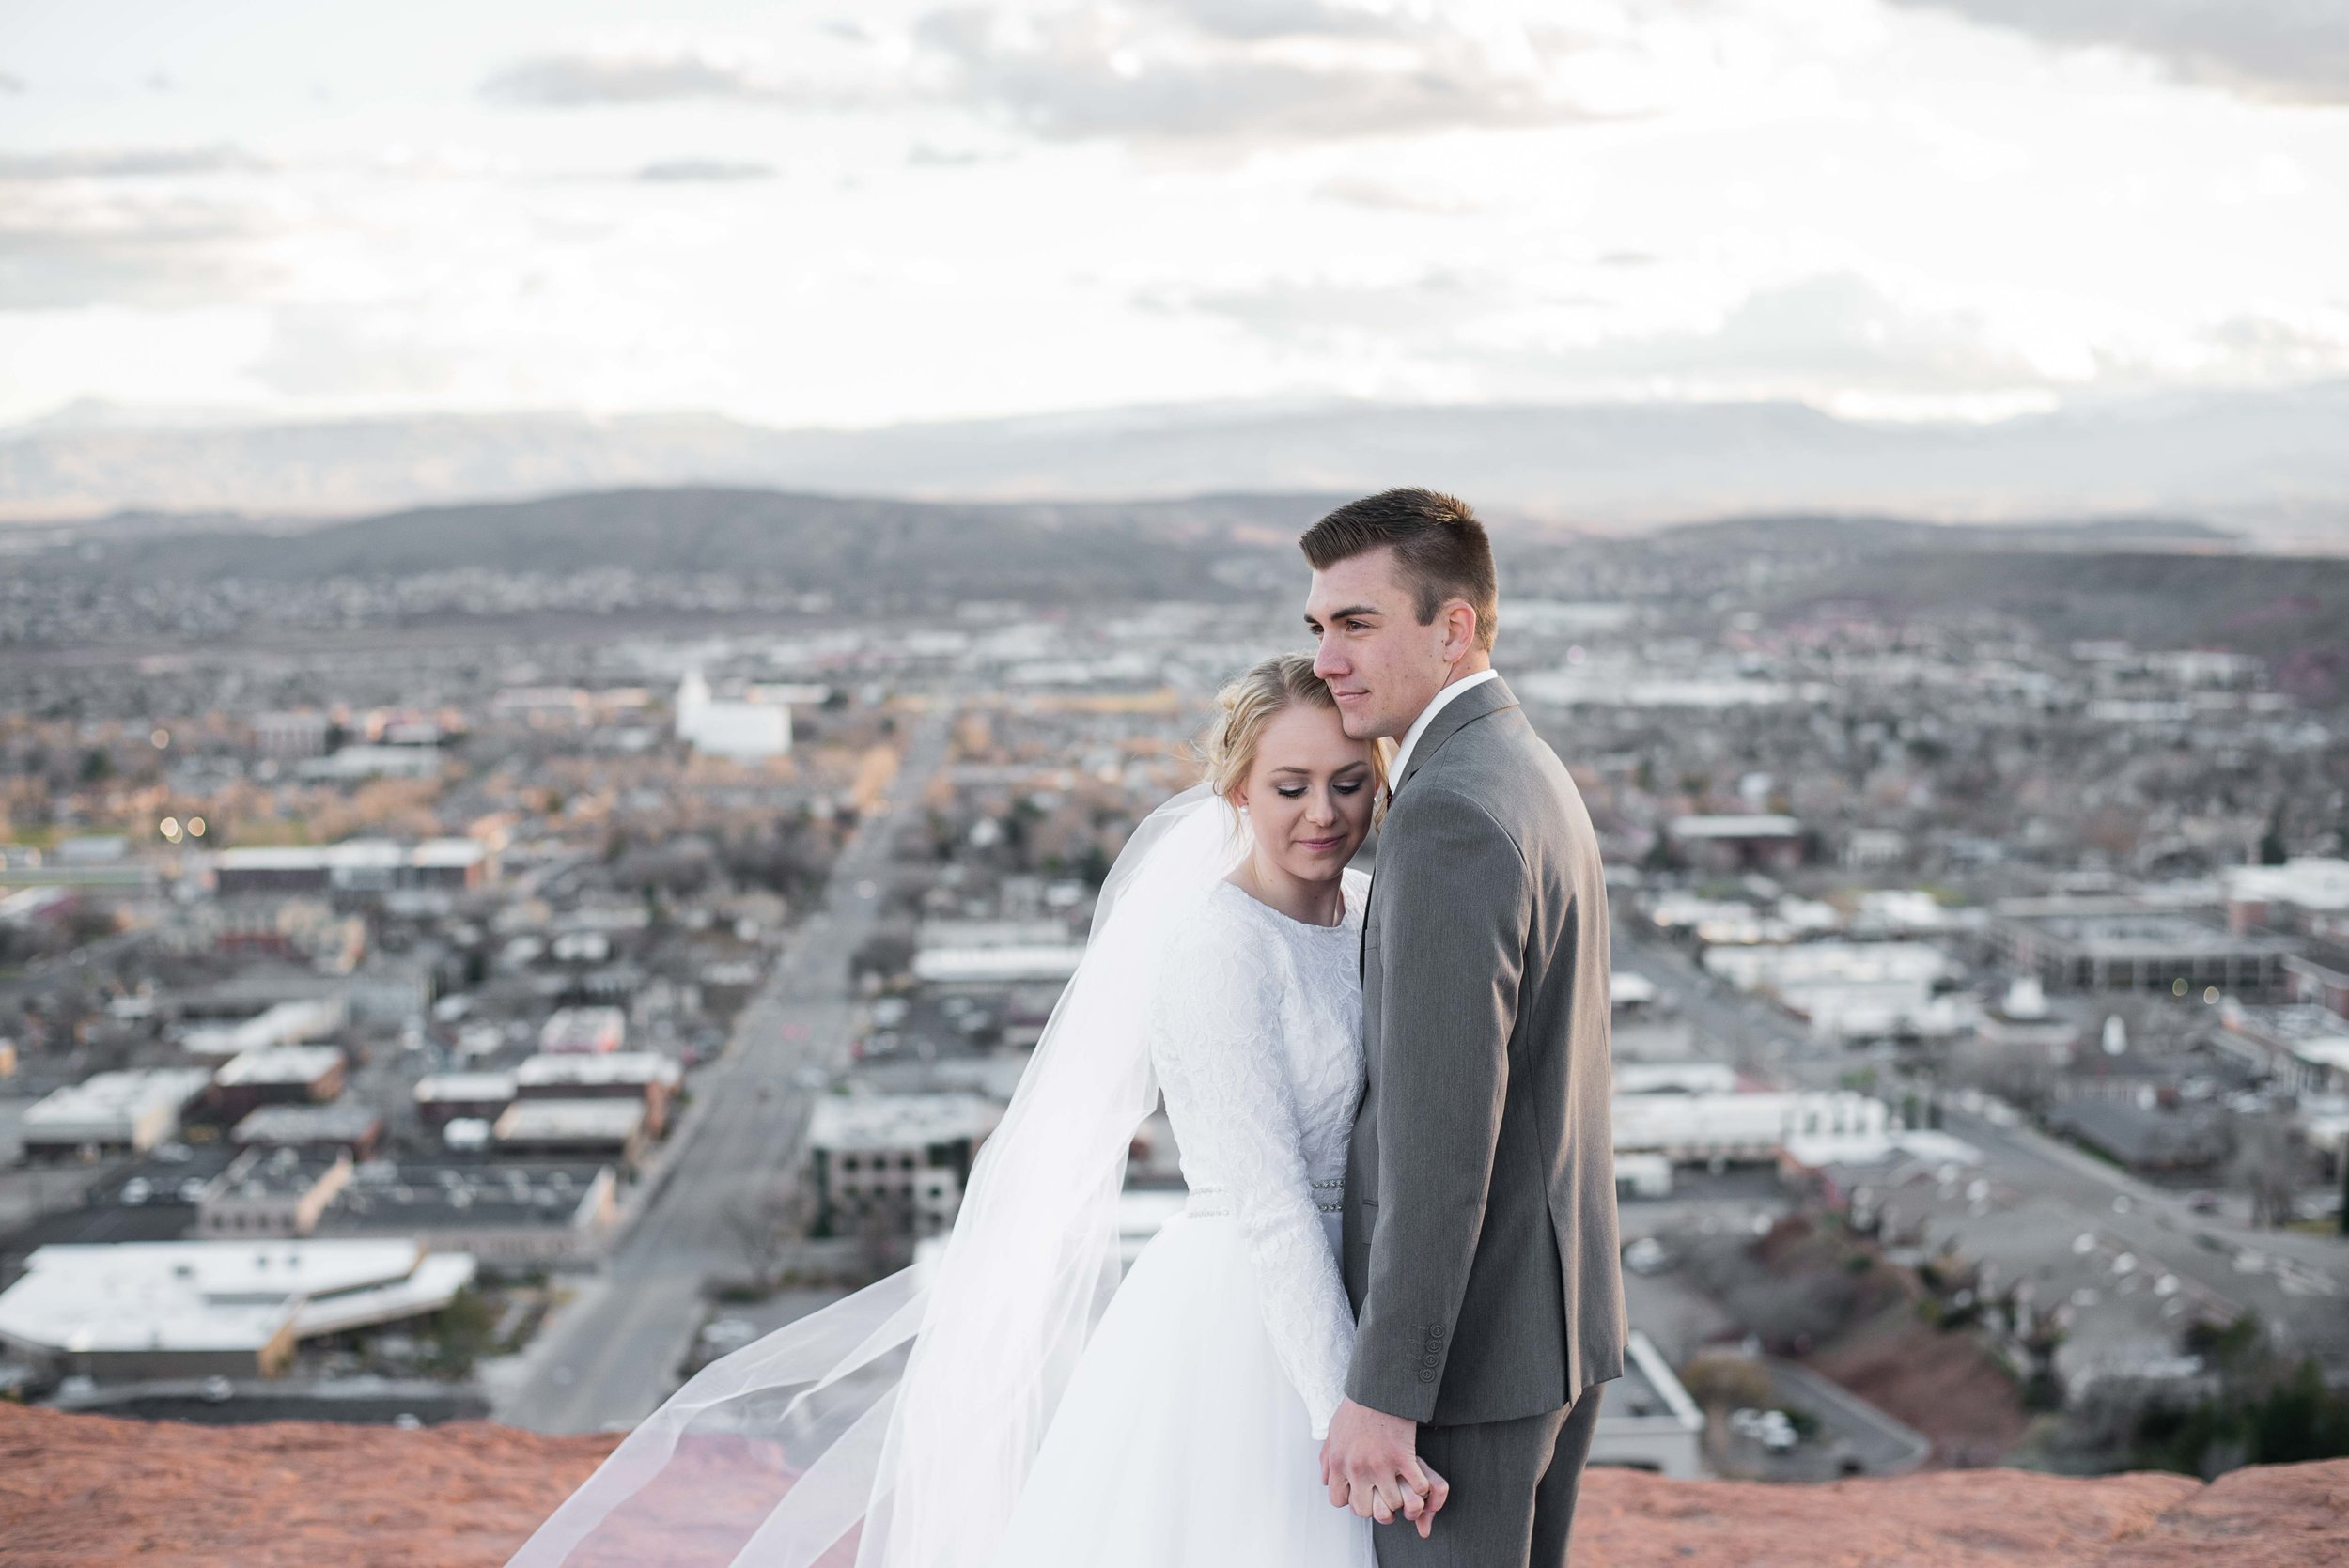 Braxton+Kaycee-BRIDALS-Sadie-Banks-Photography-225.jpg